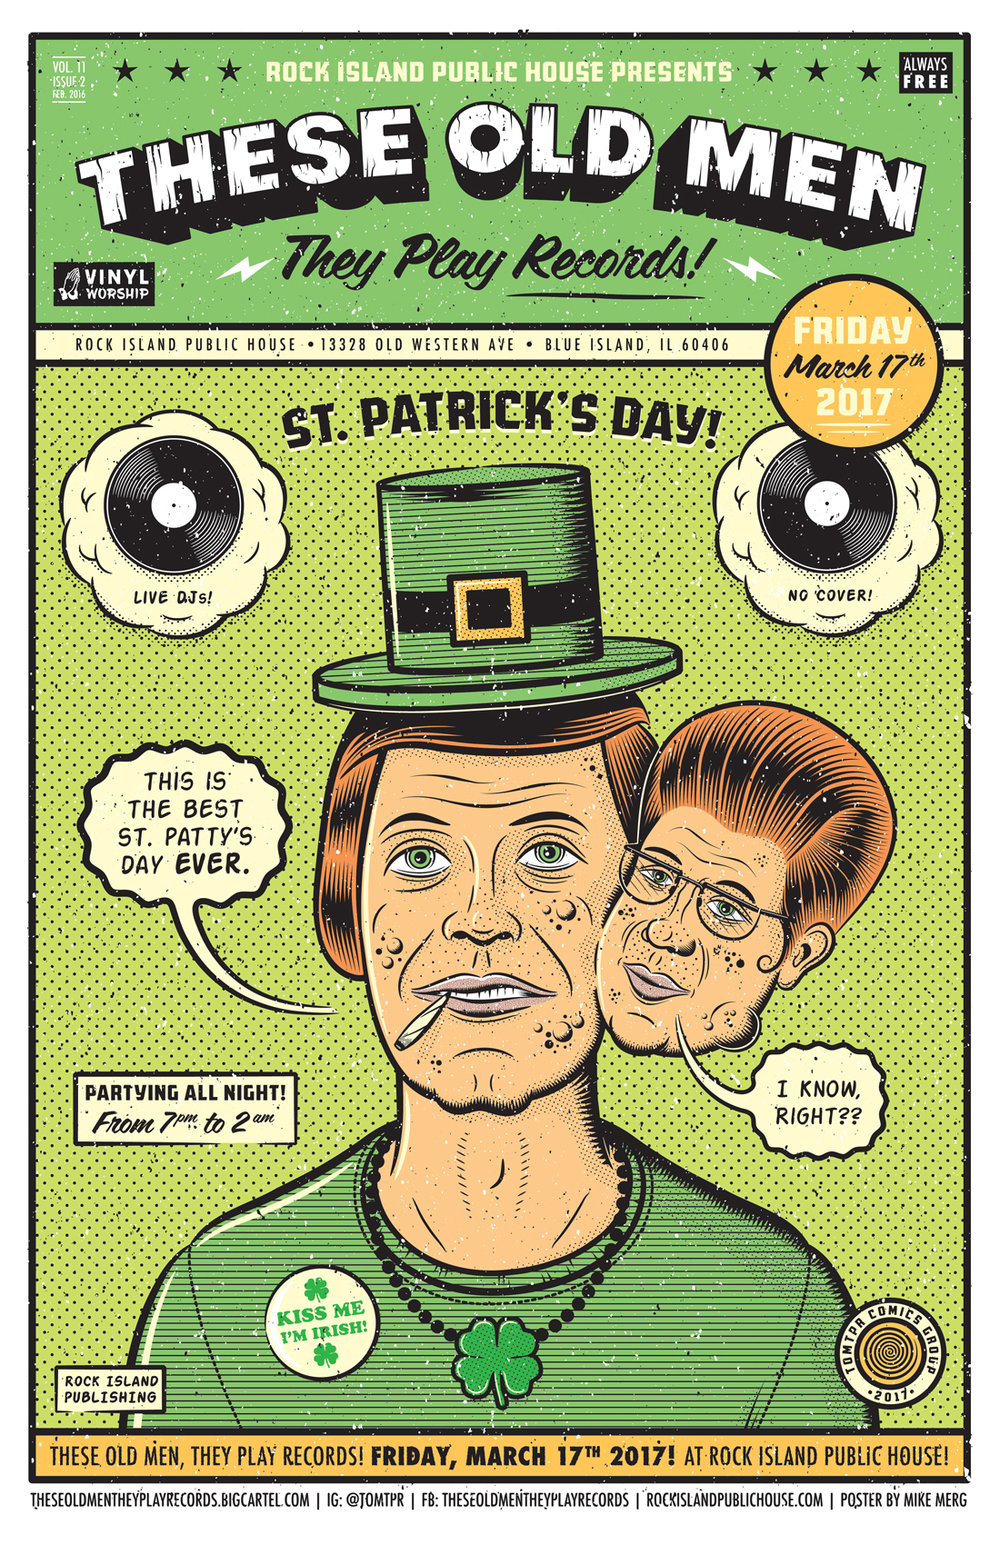 These Old Men They Play Records - The Saint Patrick's Day Event